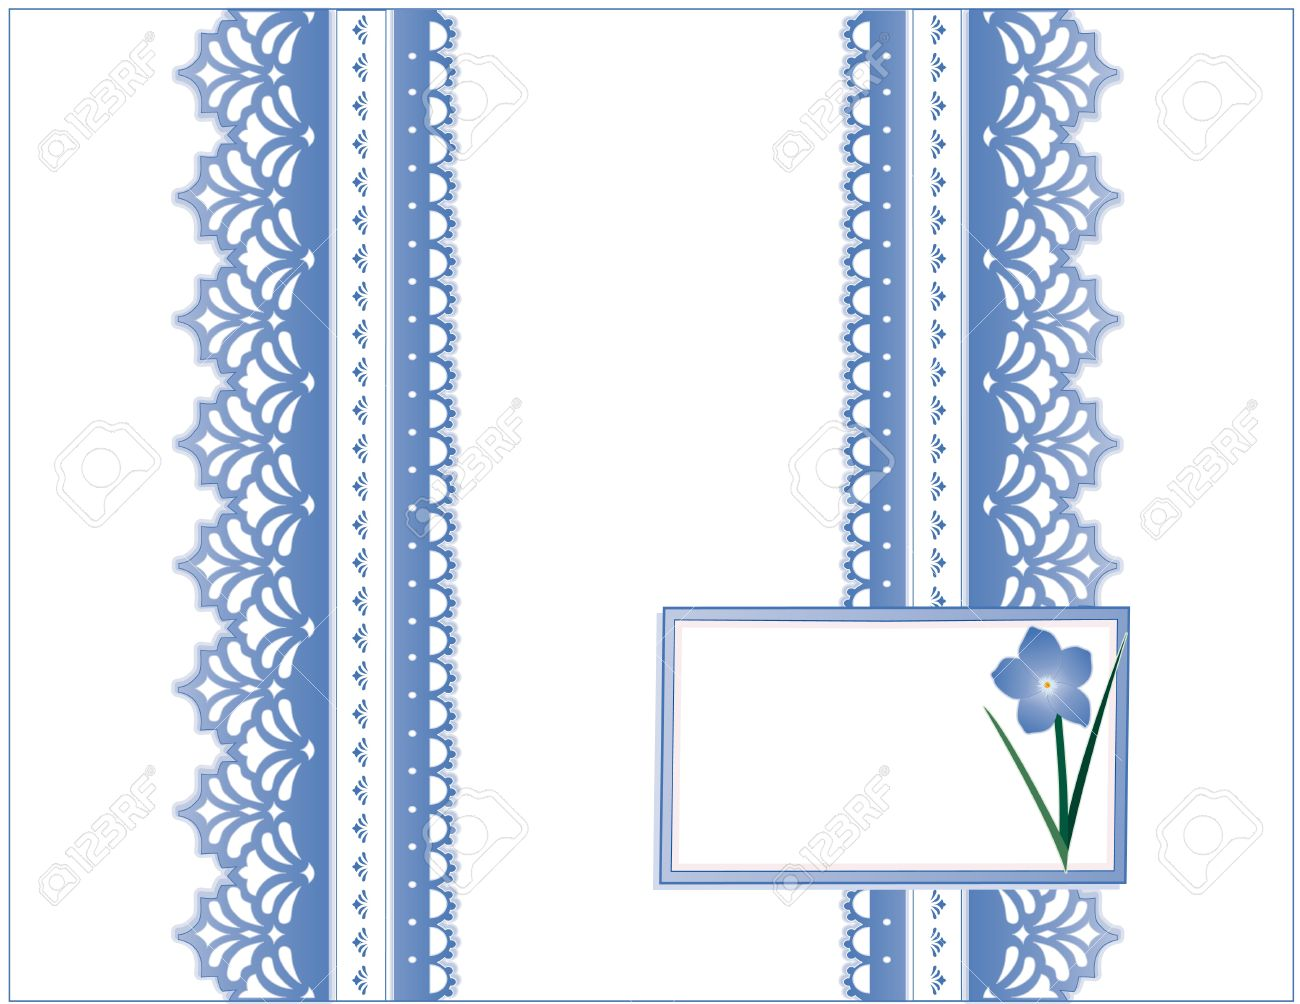 Vintage Lace, Victorian style, pastel blue, Forget Me Not flower,  Gift card with copy space for birthdays, anniversaries, Mother s Day, weddings, showers, celebrations Stock Vector - 12972622